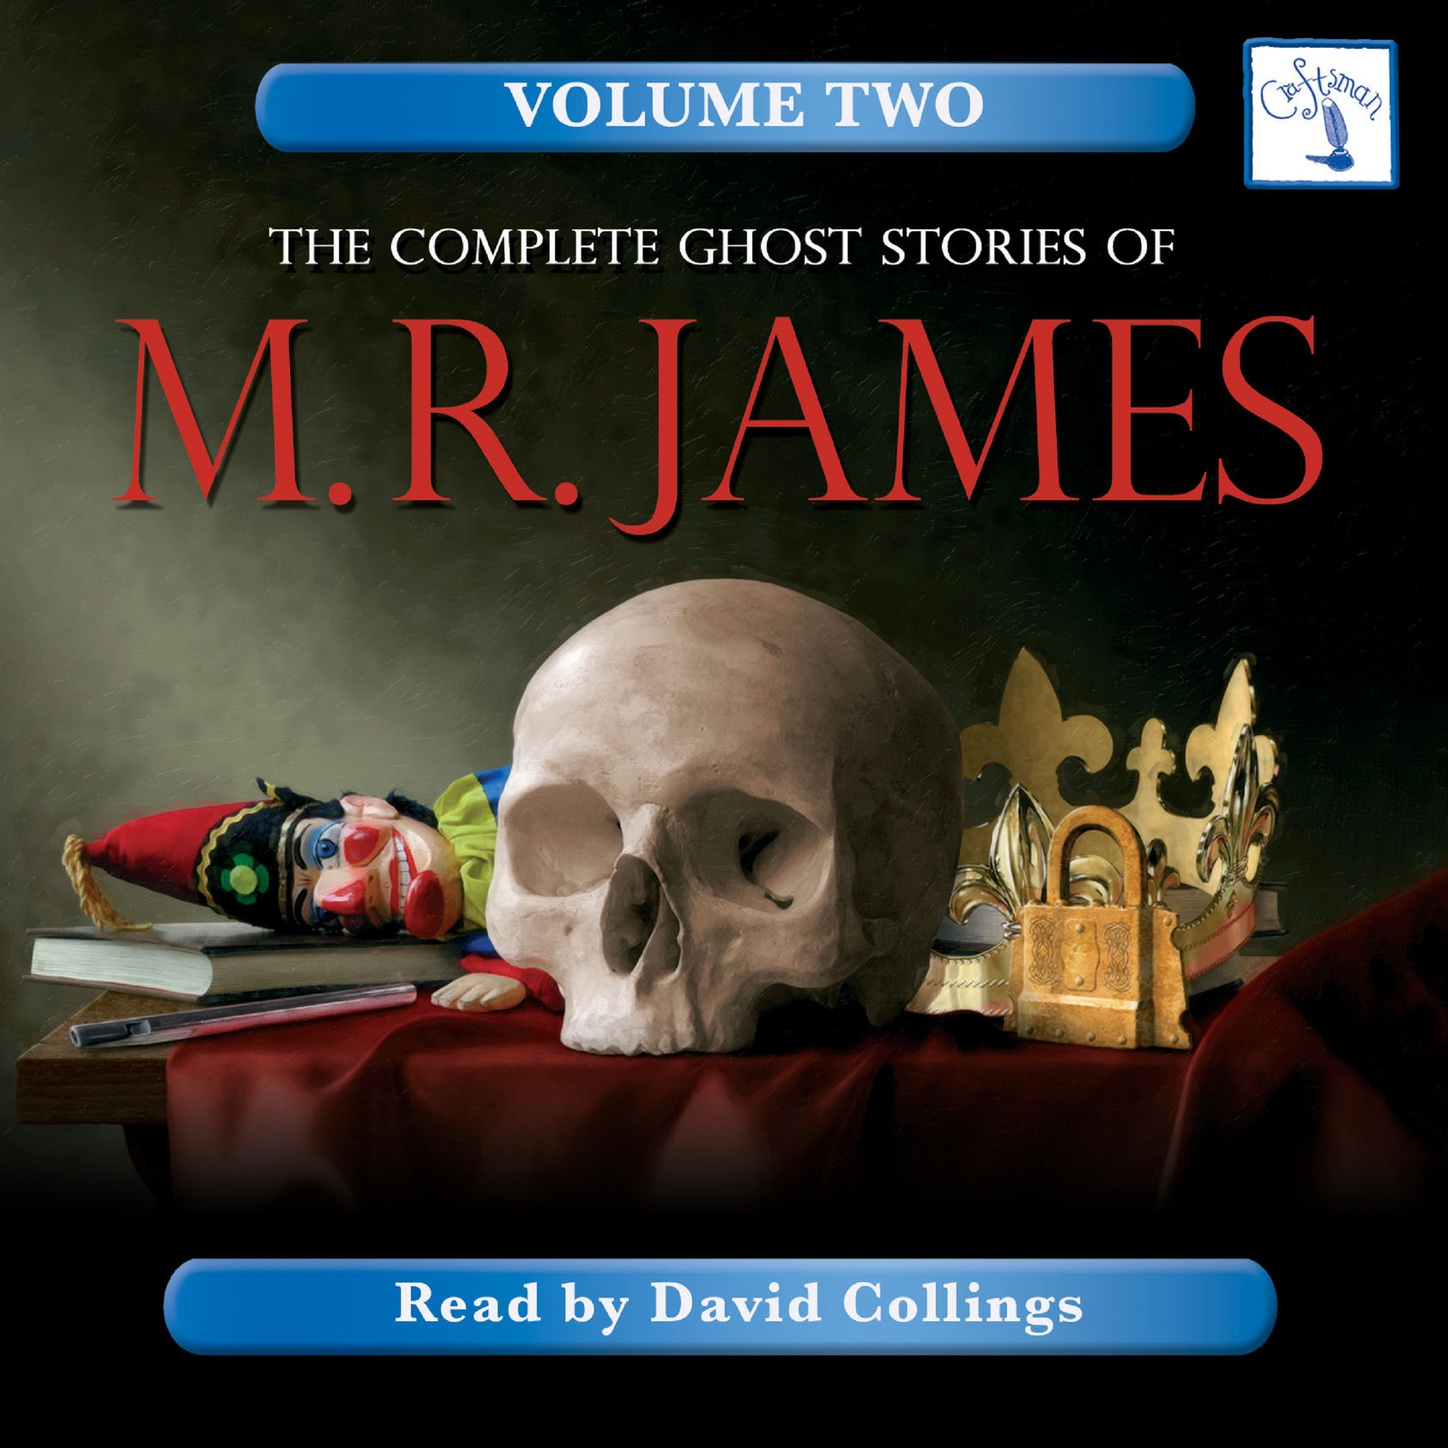 M. R. James The Complete Ghost Stories of M. R. James, Vol. 2 (Unabridged) m r james 20 haunting tales of mystery